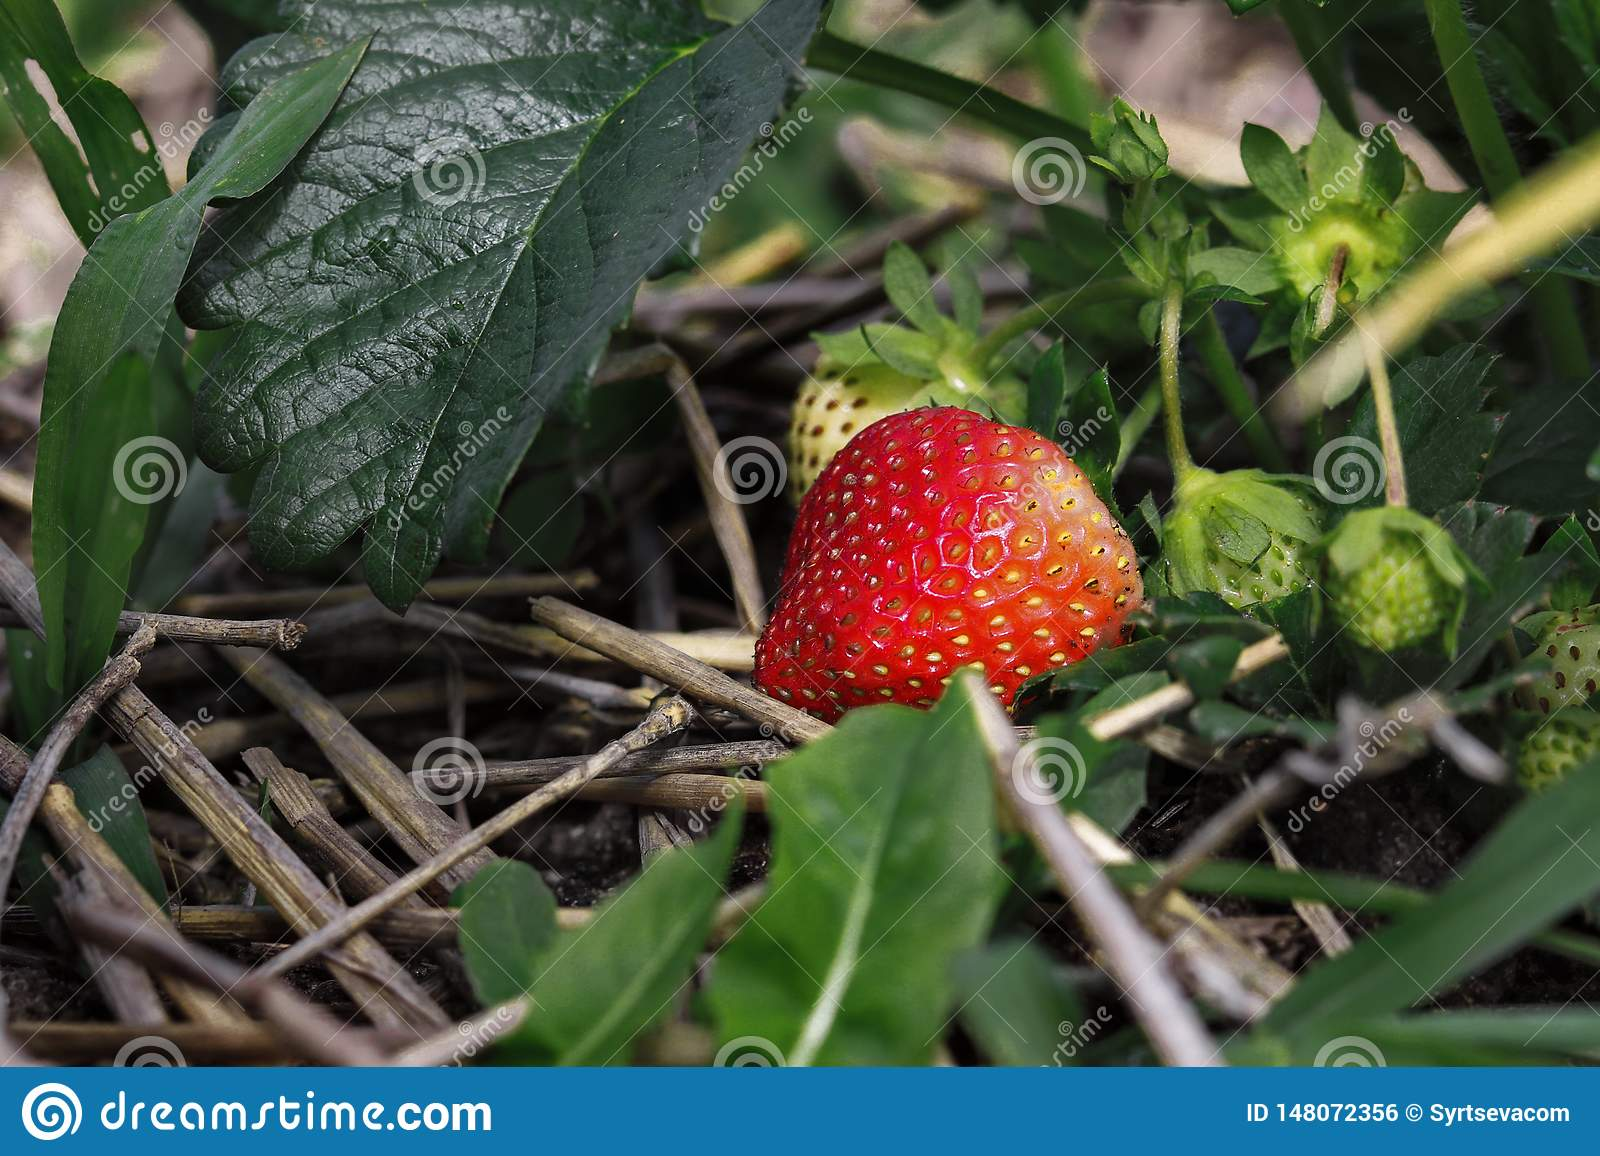 Ripe red strawberry berry grows among green leaves and hay